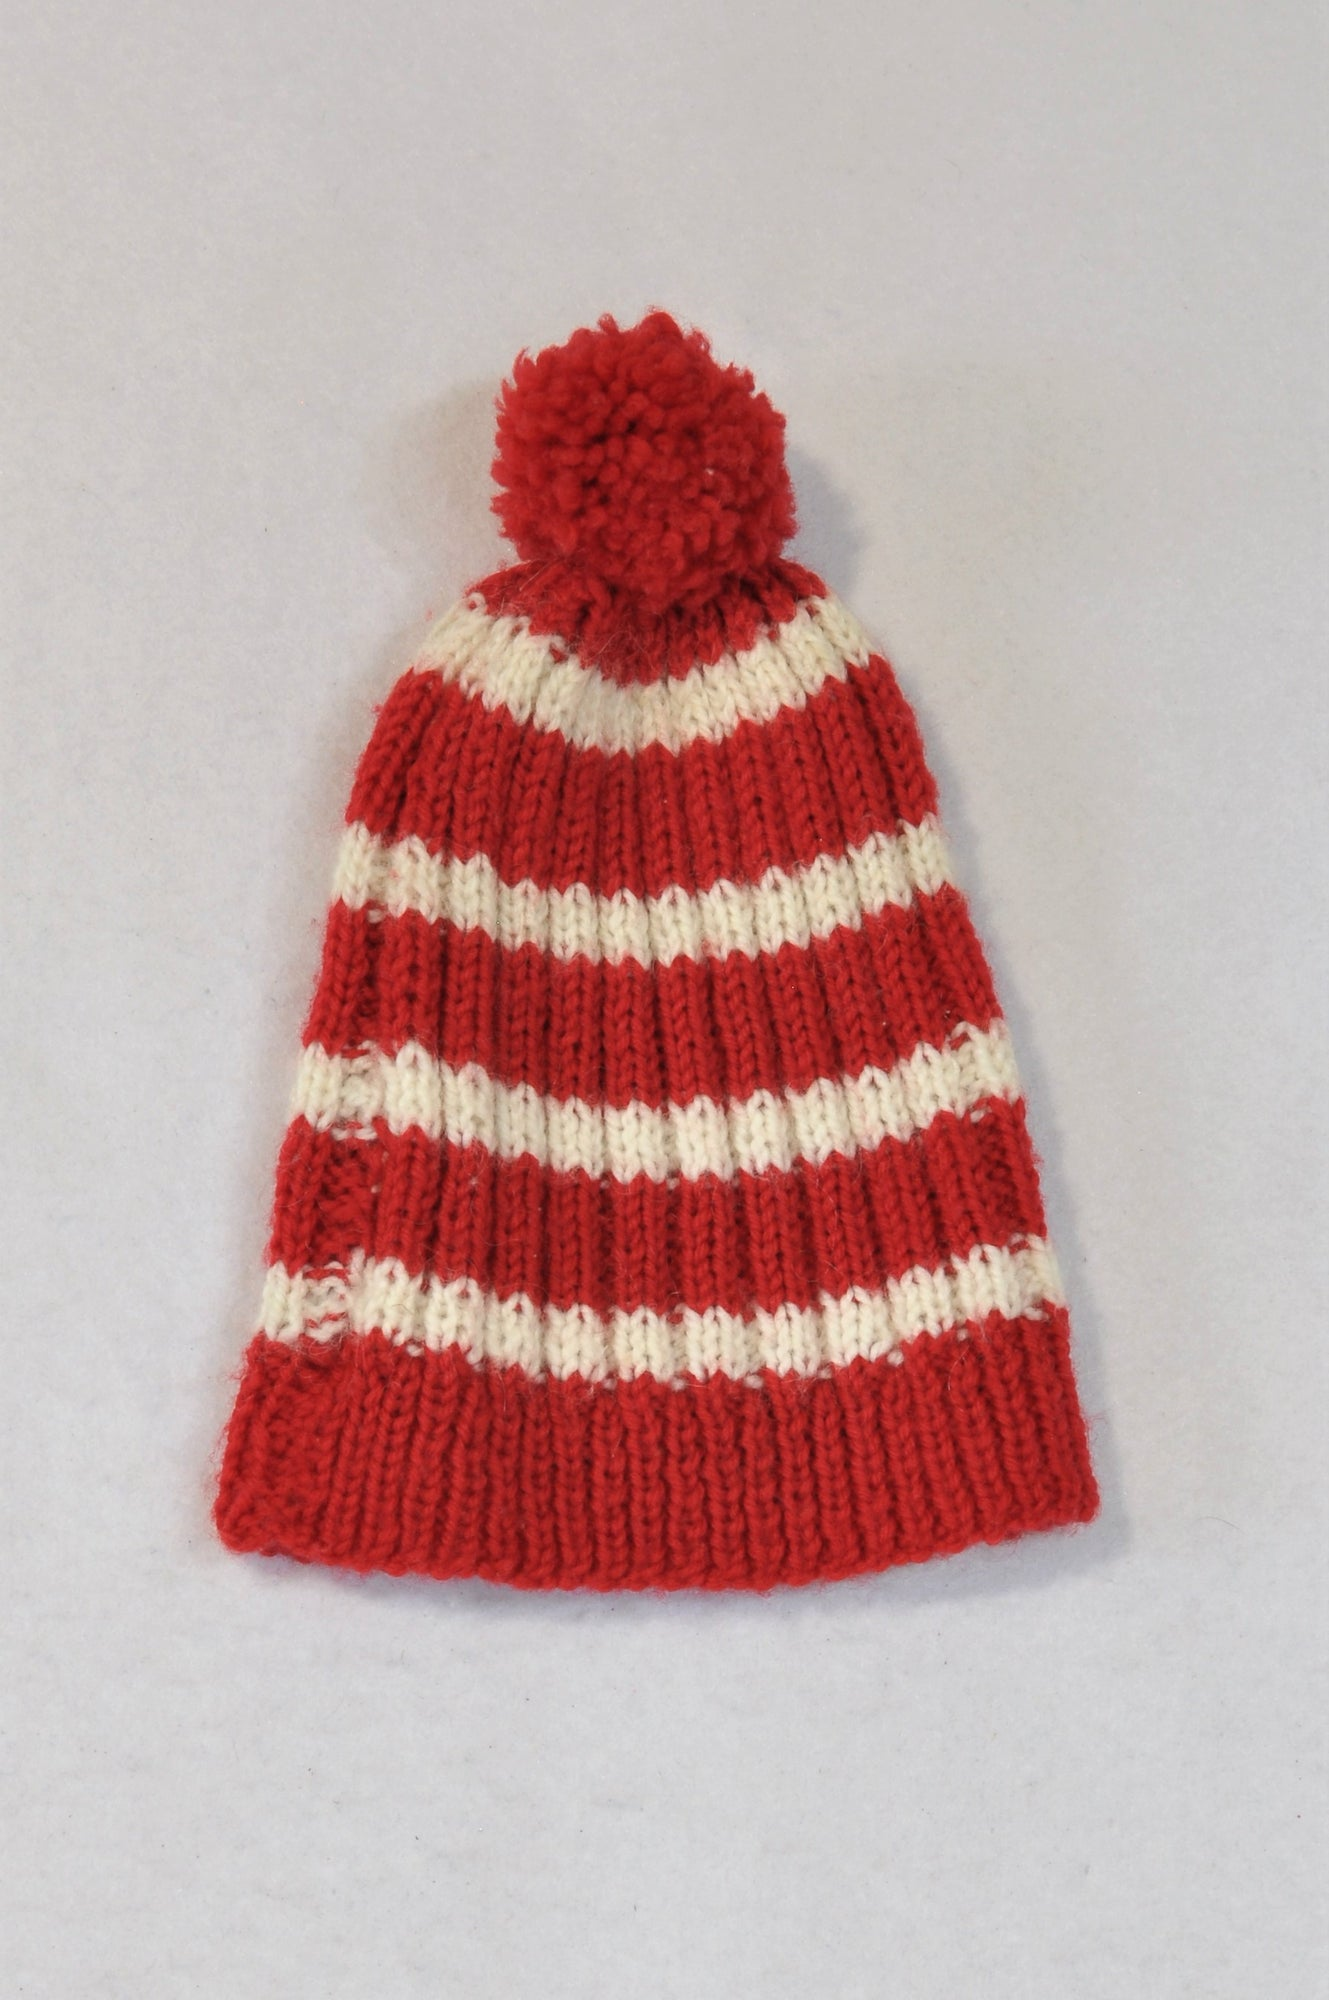 Unbranded Red & White Striped Pom Pom Beanie Unisex 2-4 years